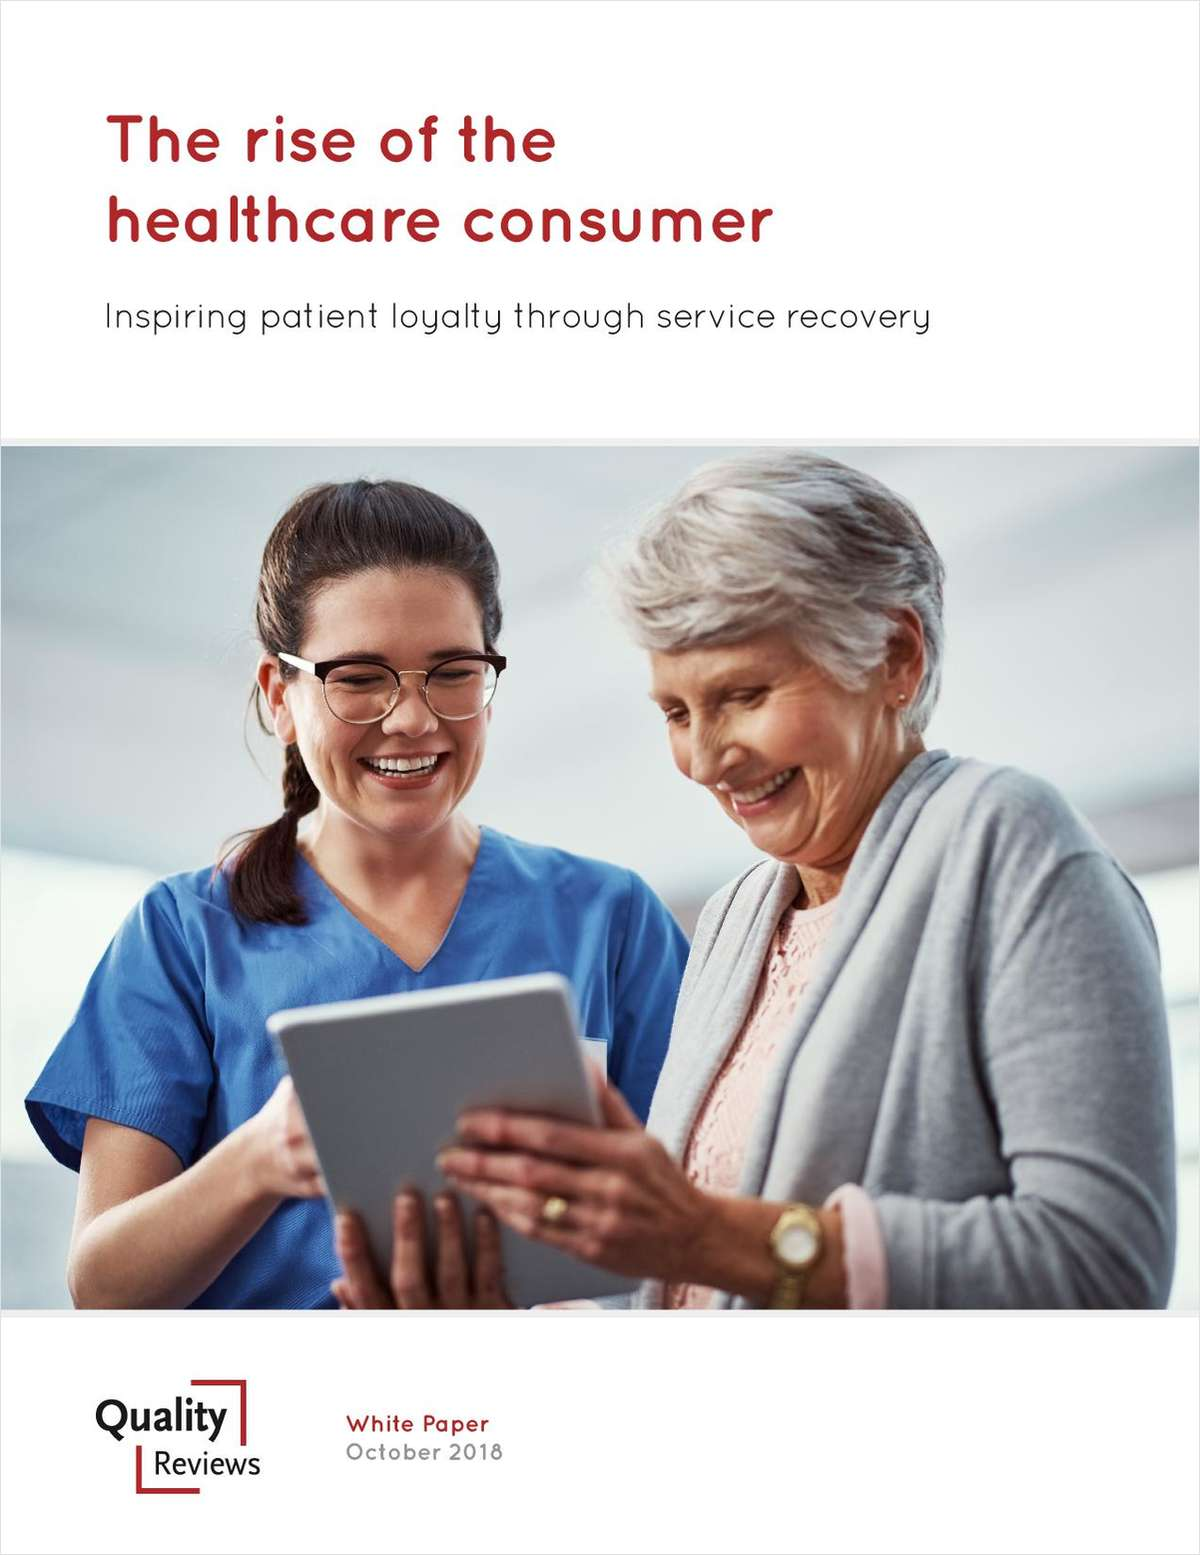 The Rise of the Healthcare Consumer: Inspiring Patient Loyalty Through Service Recovery